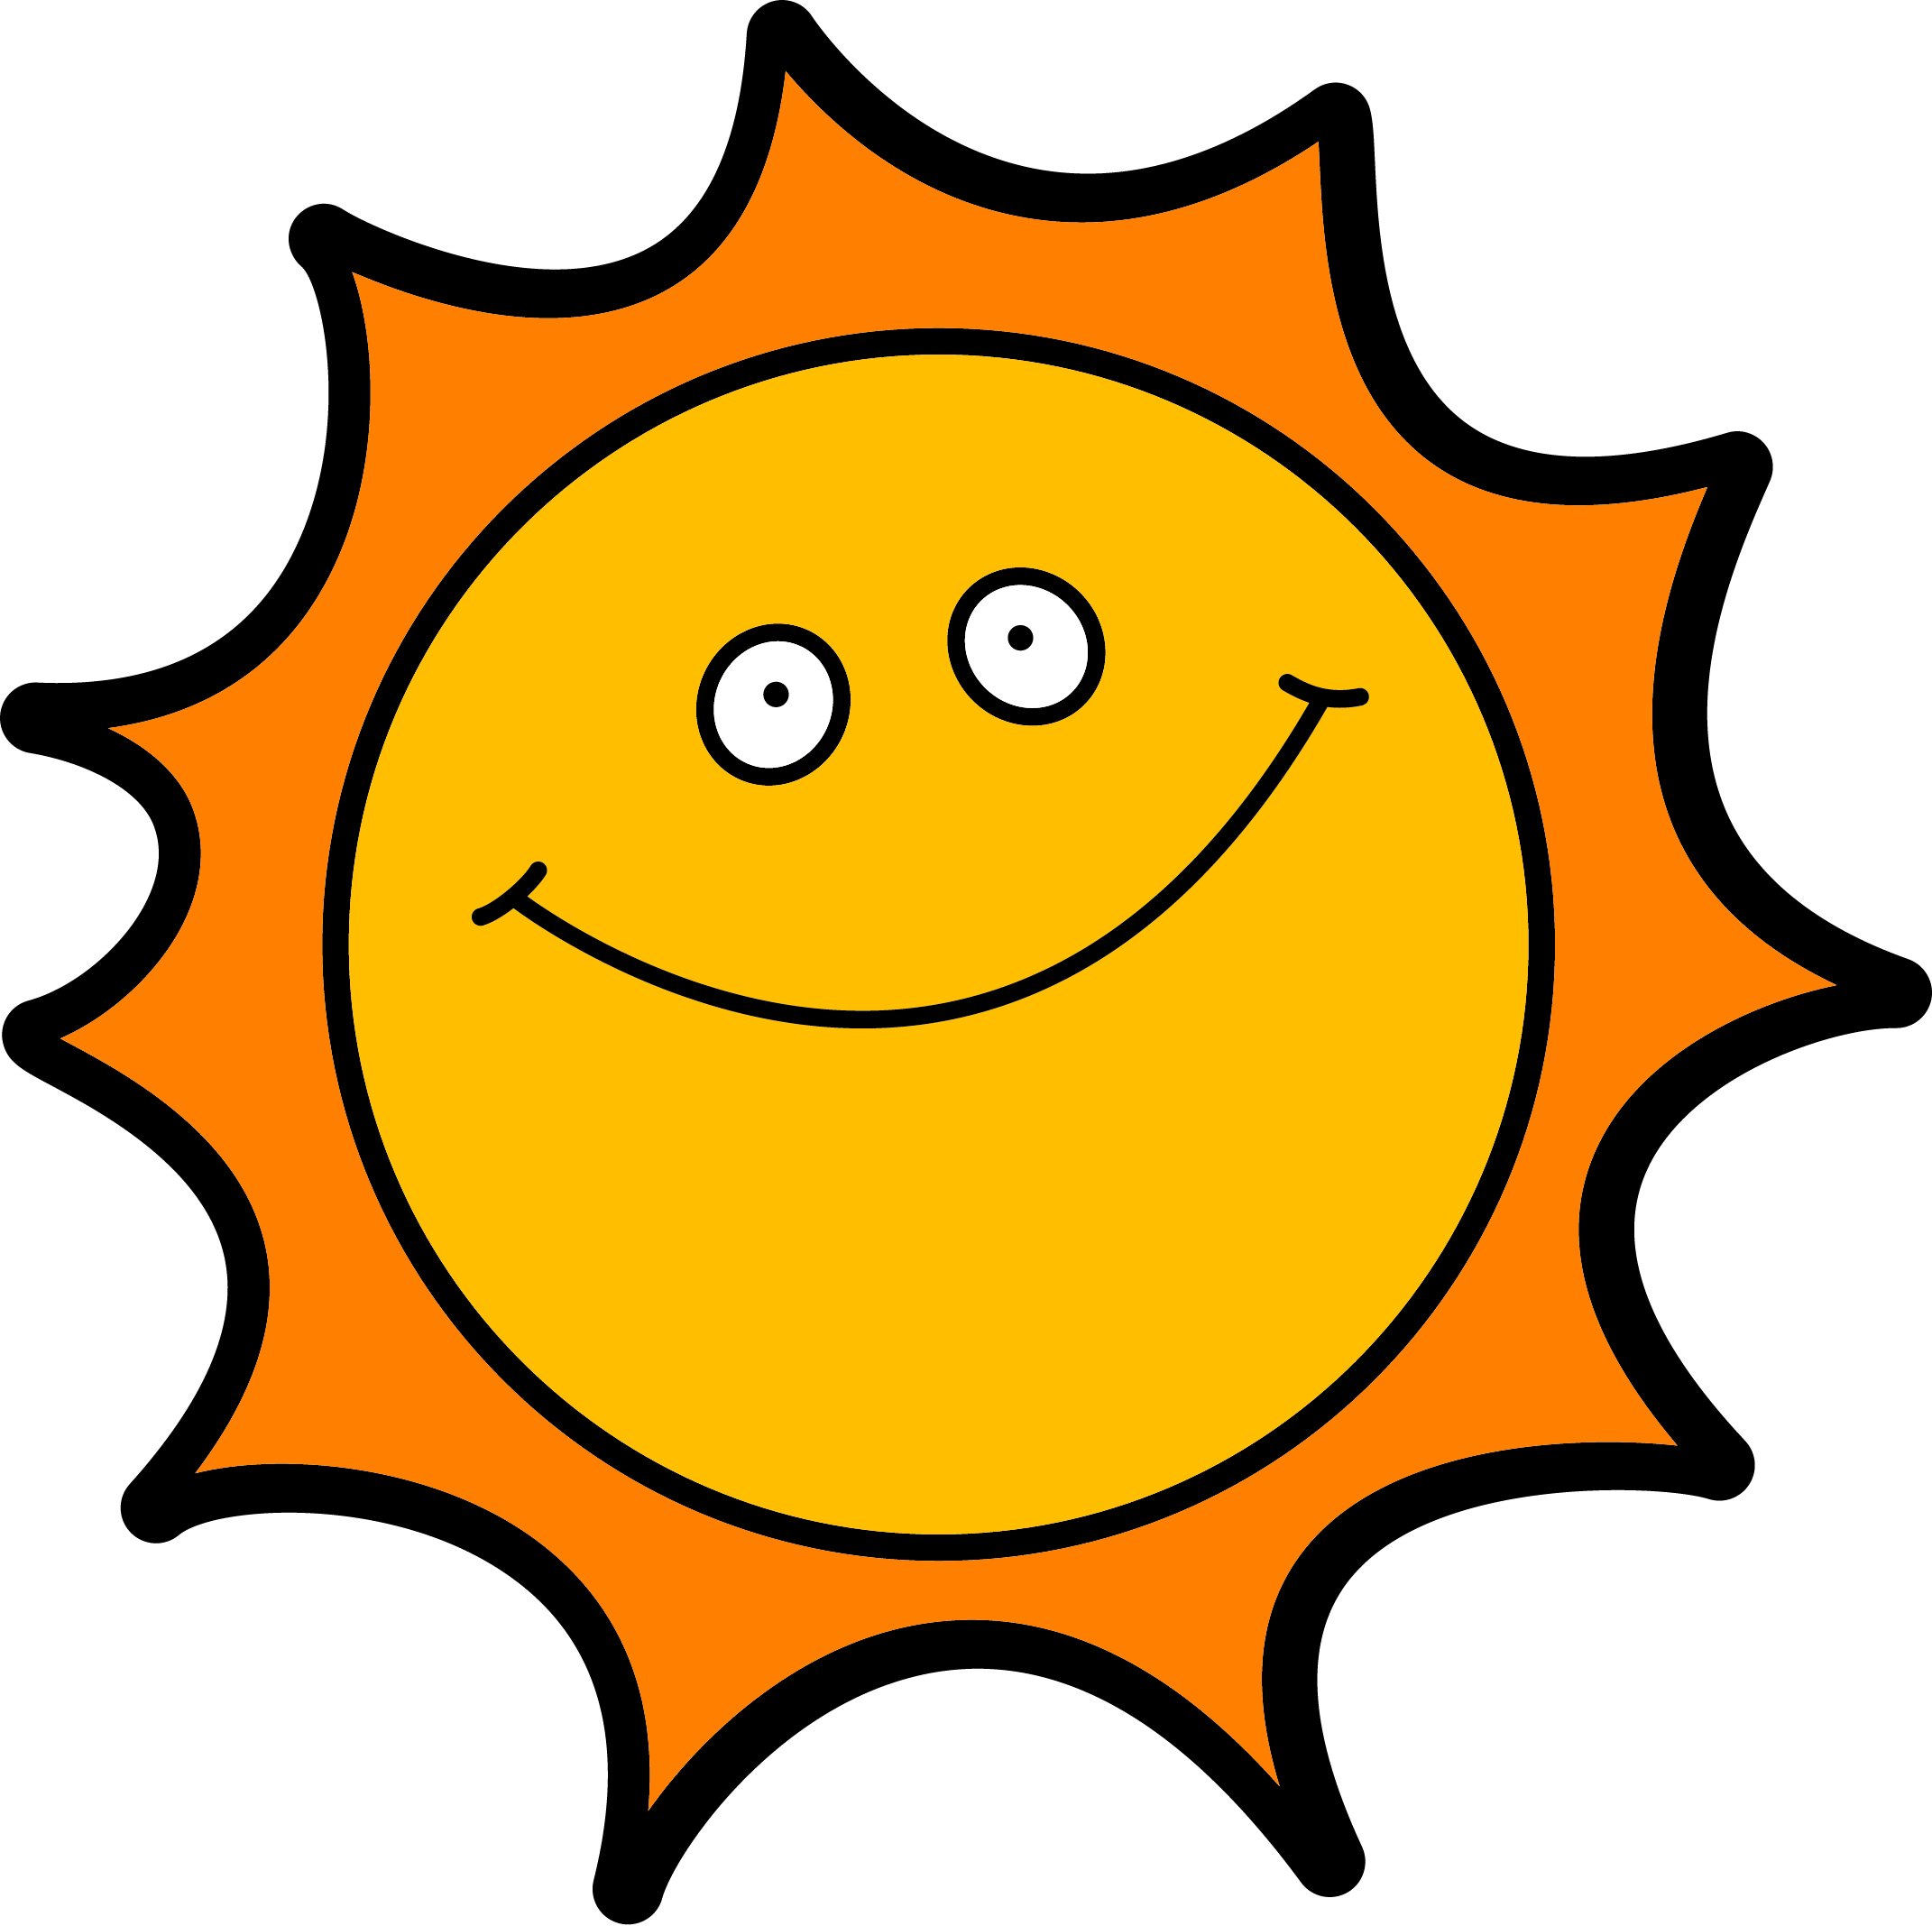 Hot Sun Images - Clipart library | Clipart library - Free Clipart Images